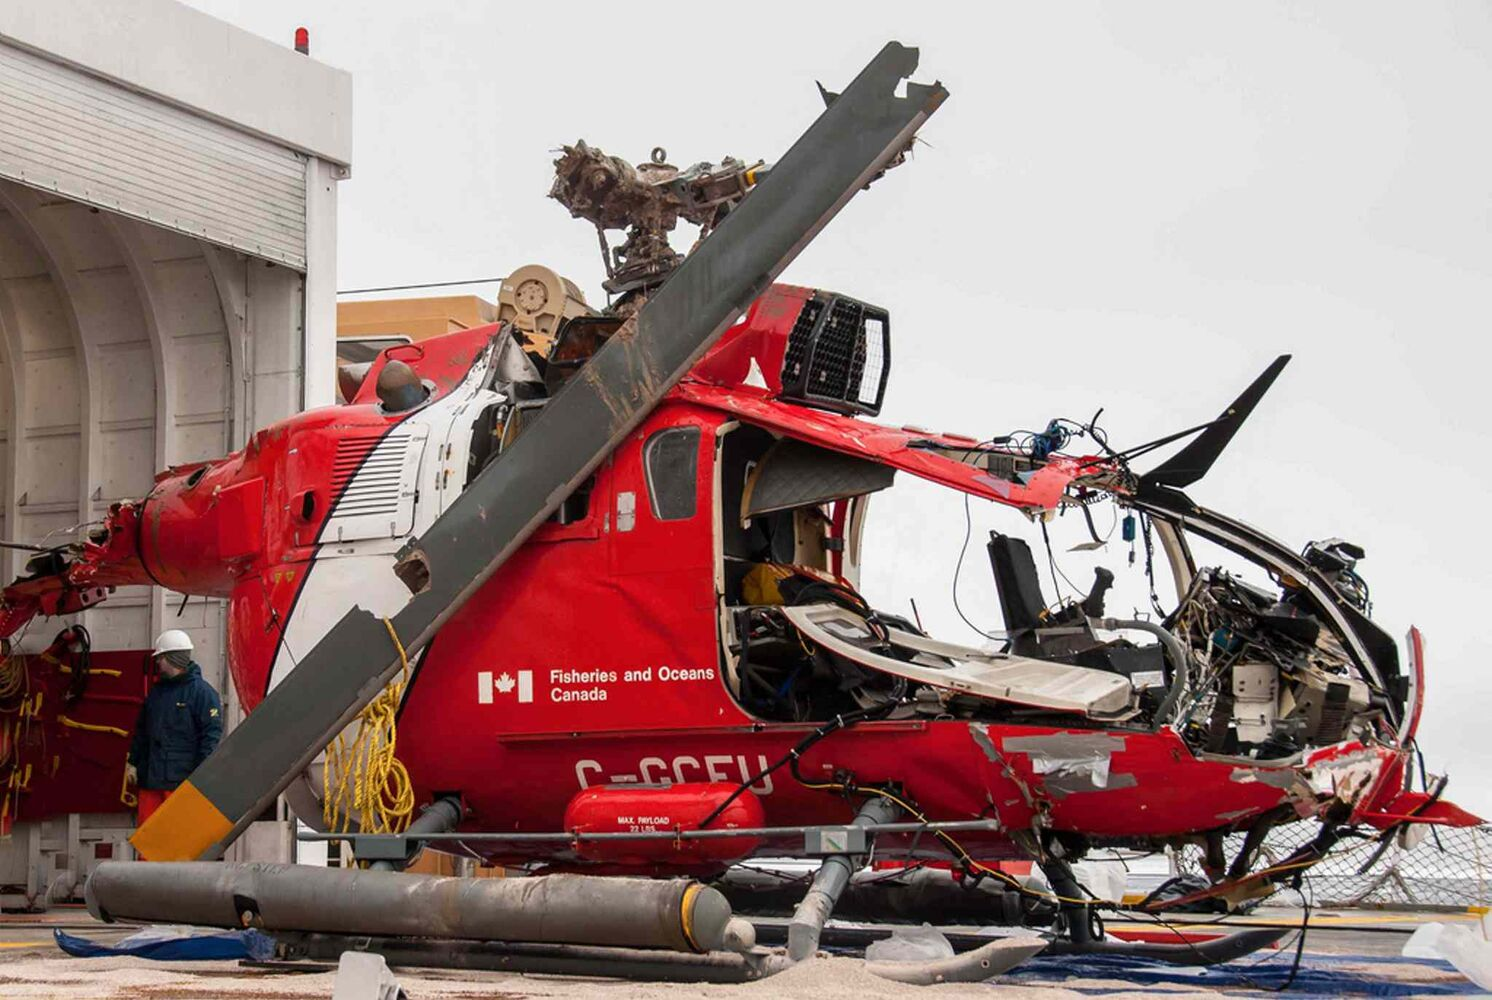 Wreckage of the Canadian Coast Guard helicopter Messerschmitt Bolkow-Blohm Bo 105